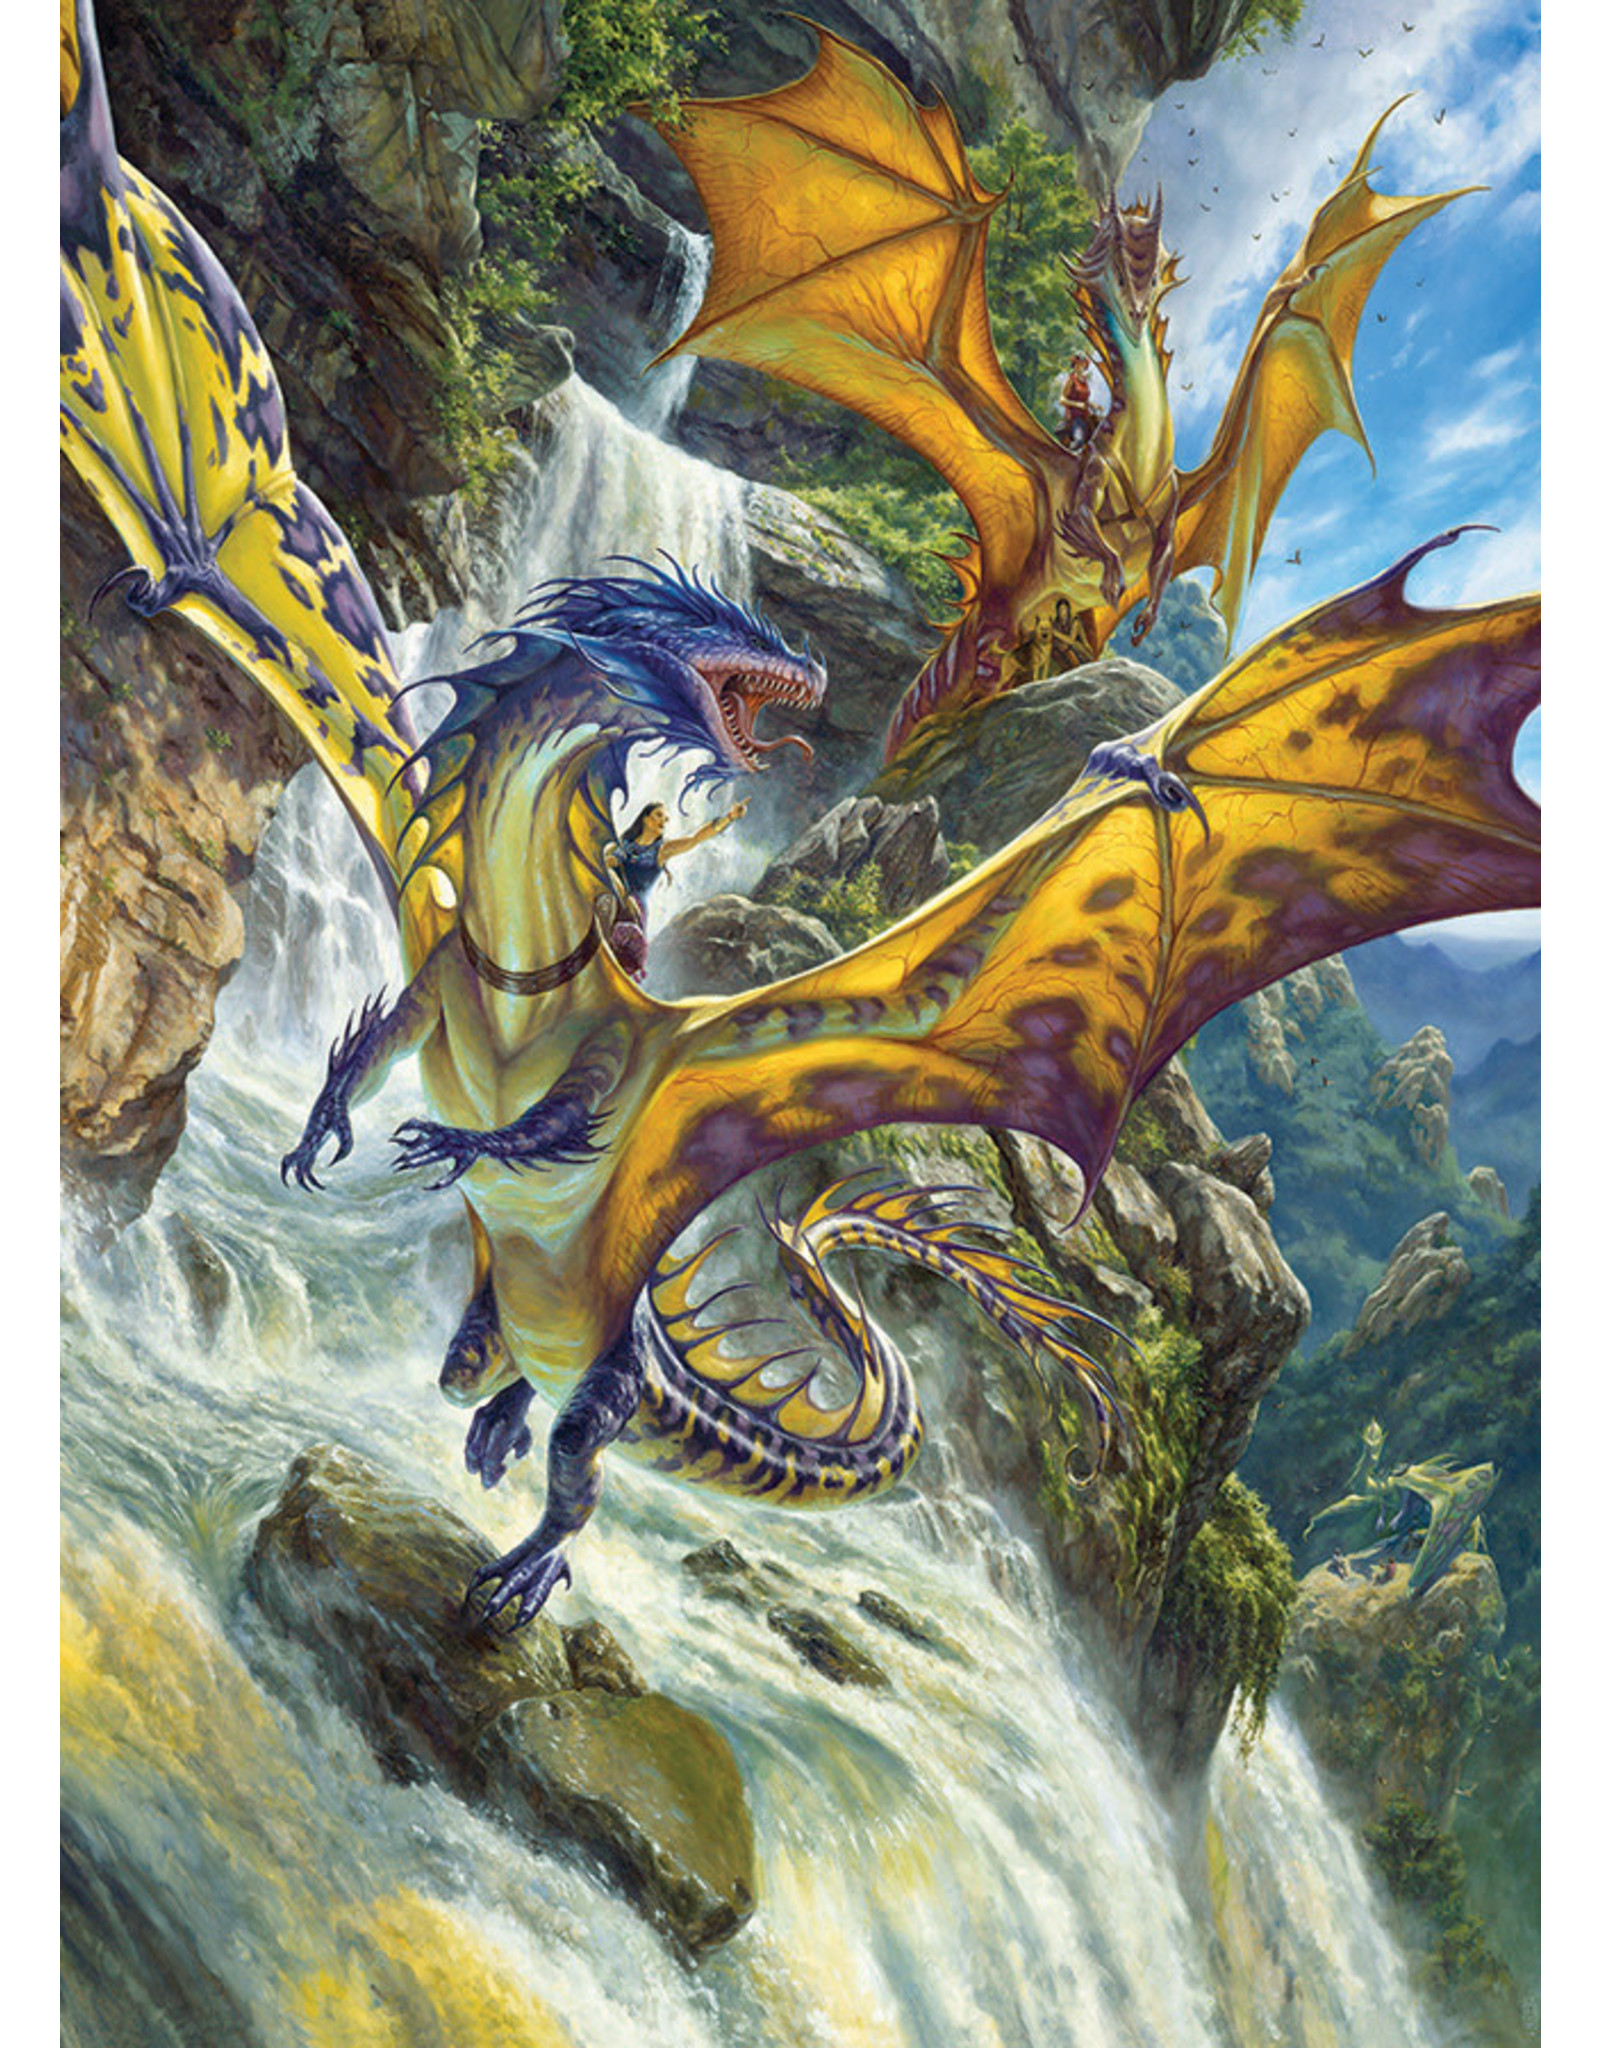 Cobble Hill 1000PC PUZZLE - WATERFALL DRAGONS